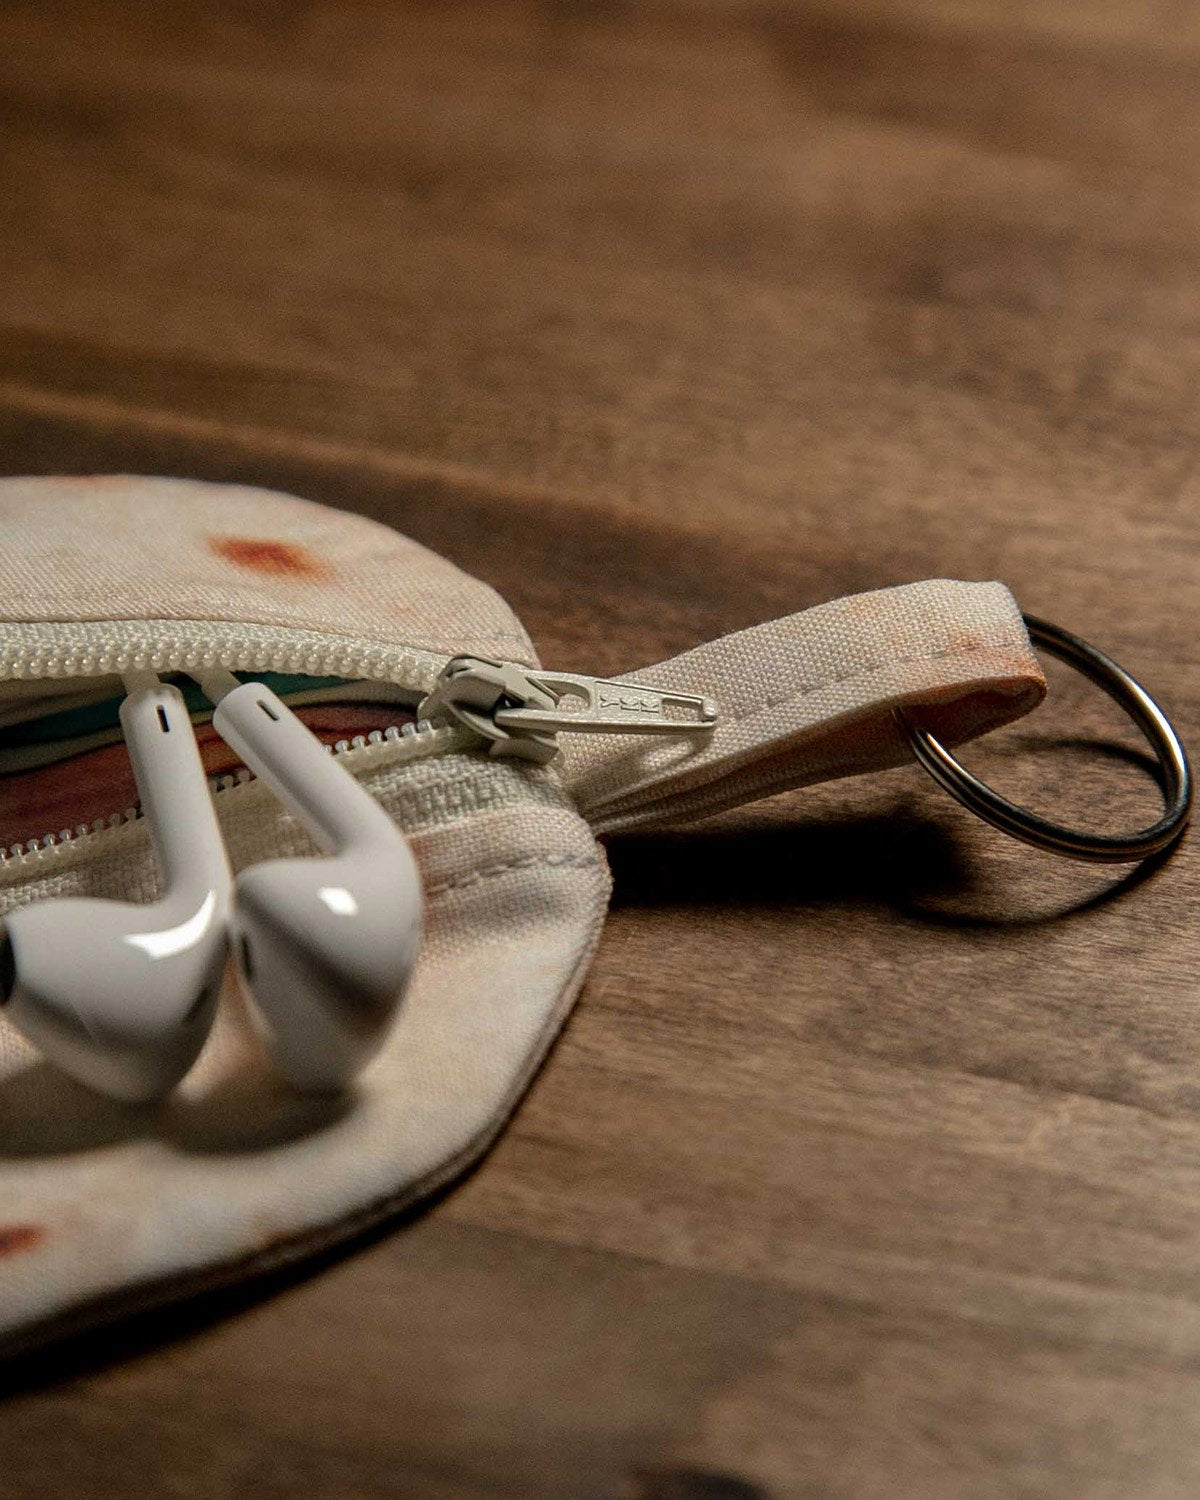 Tortilla Pouch Key Chain (Handmade) - Taco Gear